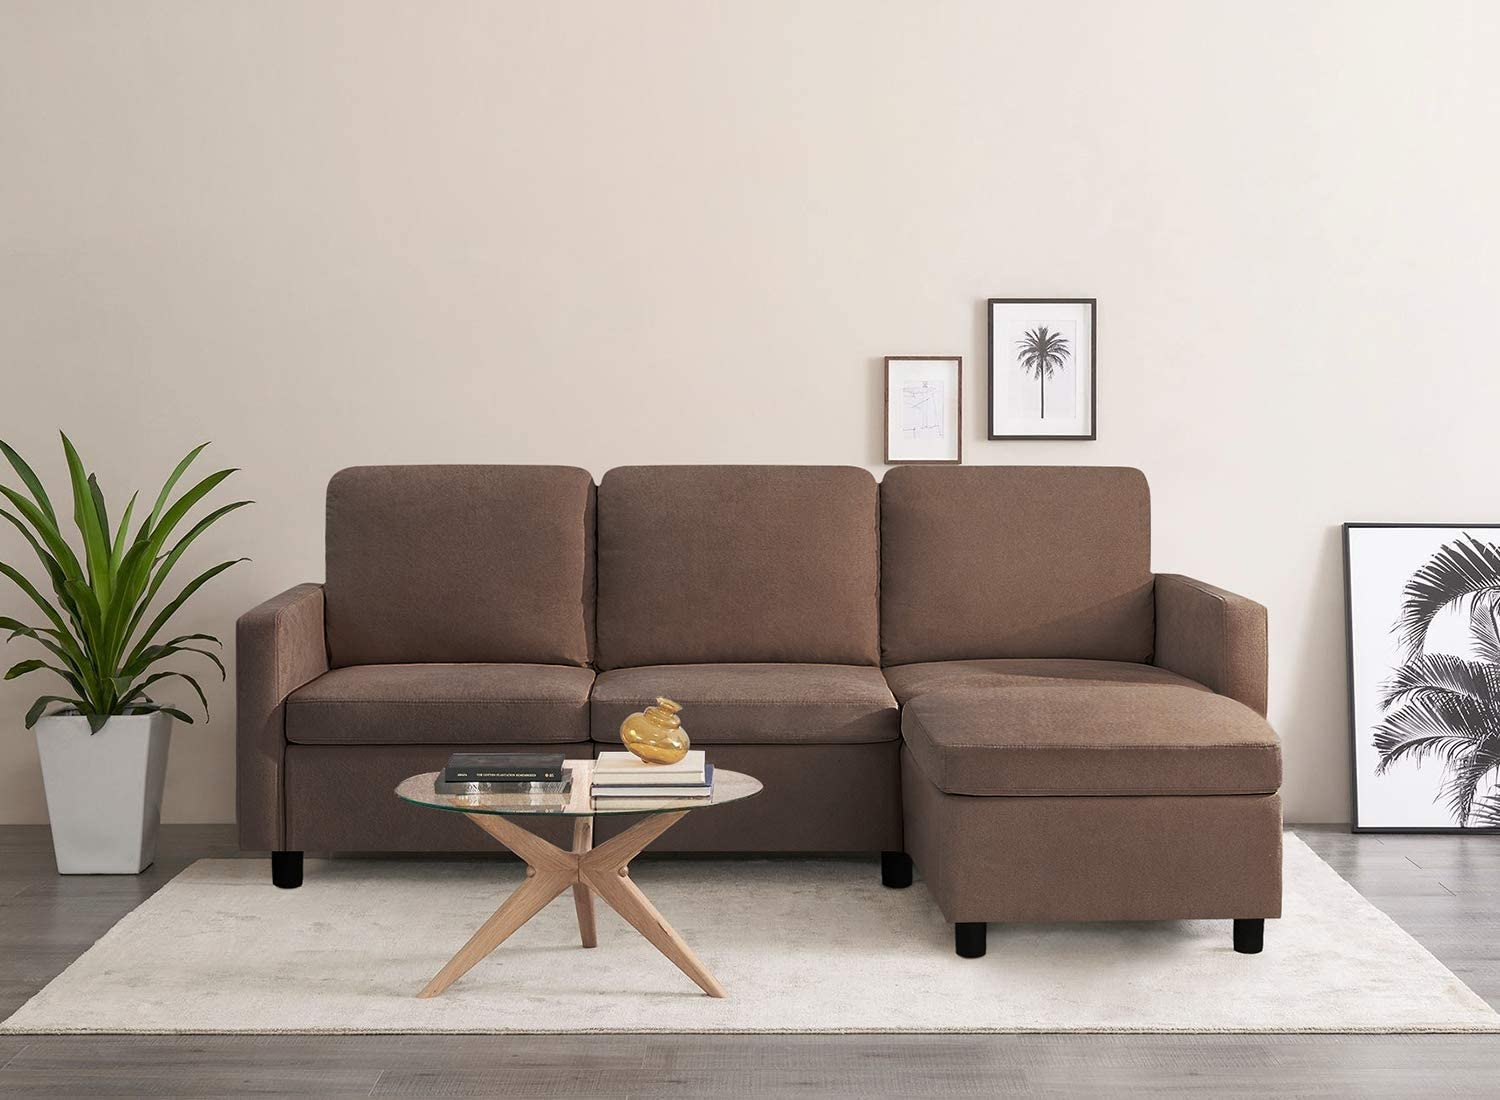 Pawnova Convertible Sectional Sofa Couch L-Shaped Settee with Soft Seat, Comfortable Backrest and Modern Linen Fabric for Small Space, Living Room, Brown